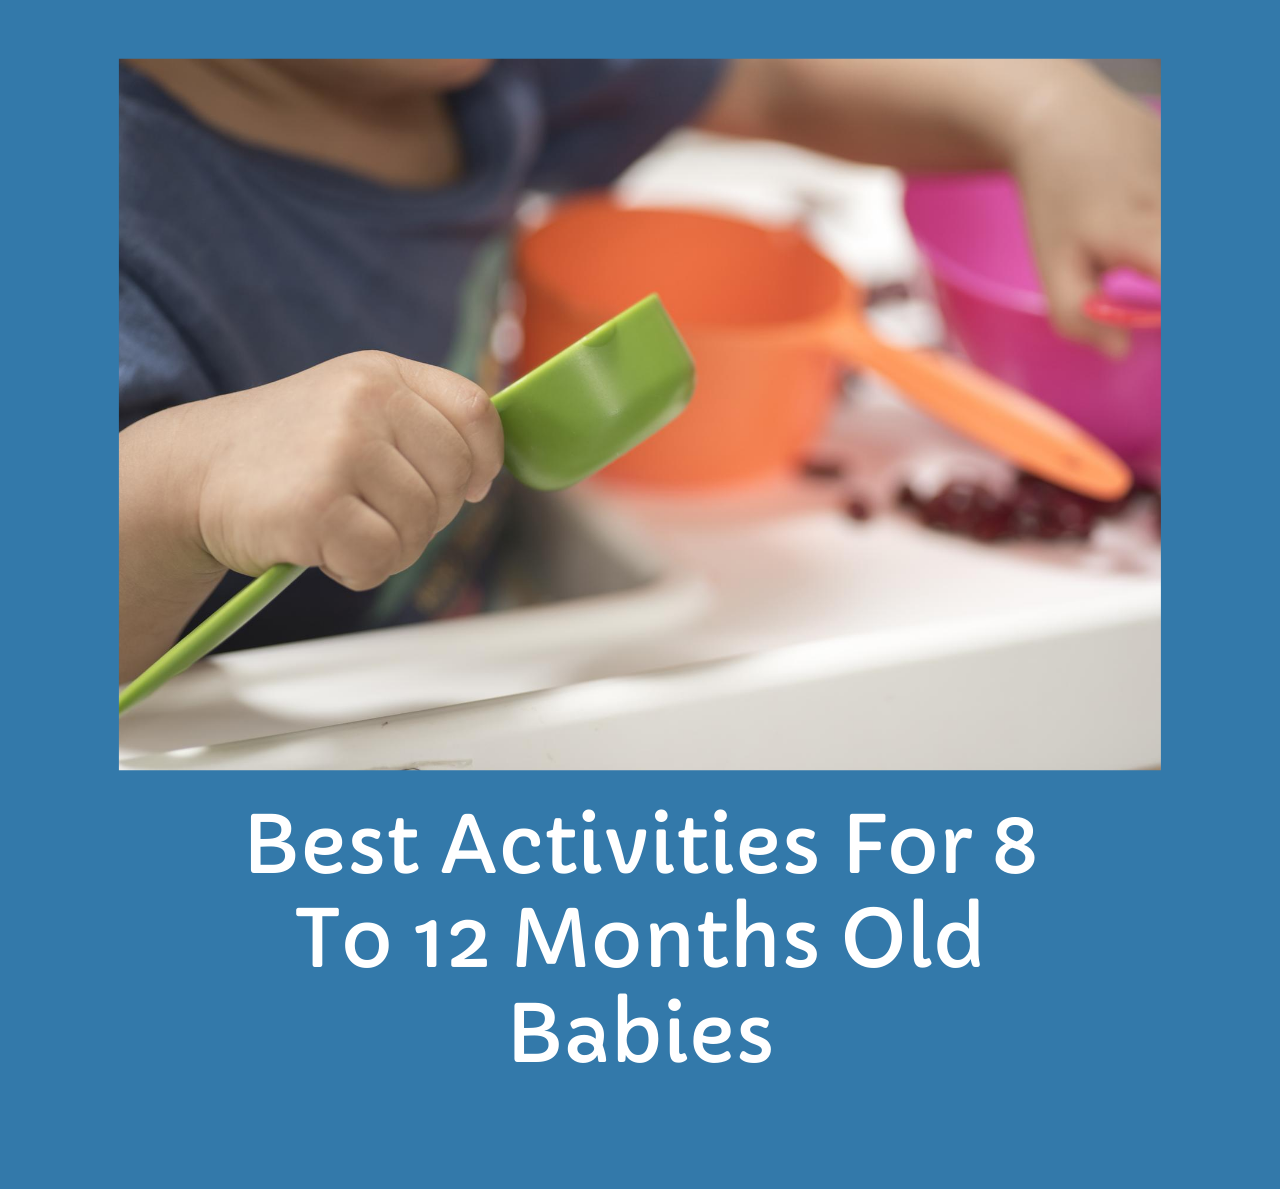 Infant activities for 8 to 12 months old babies